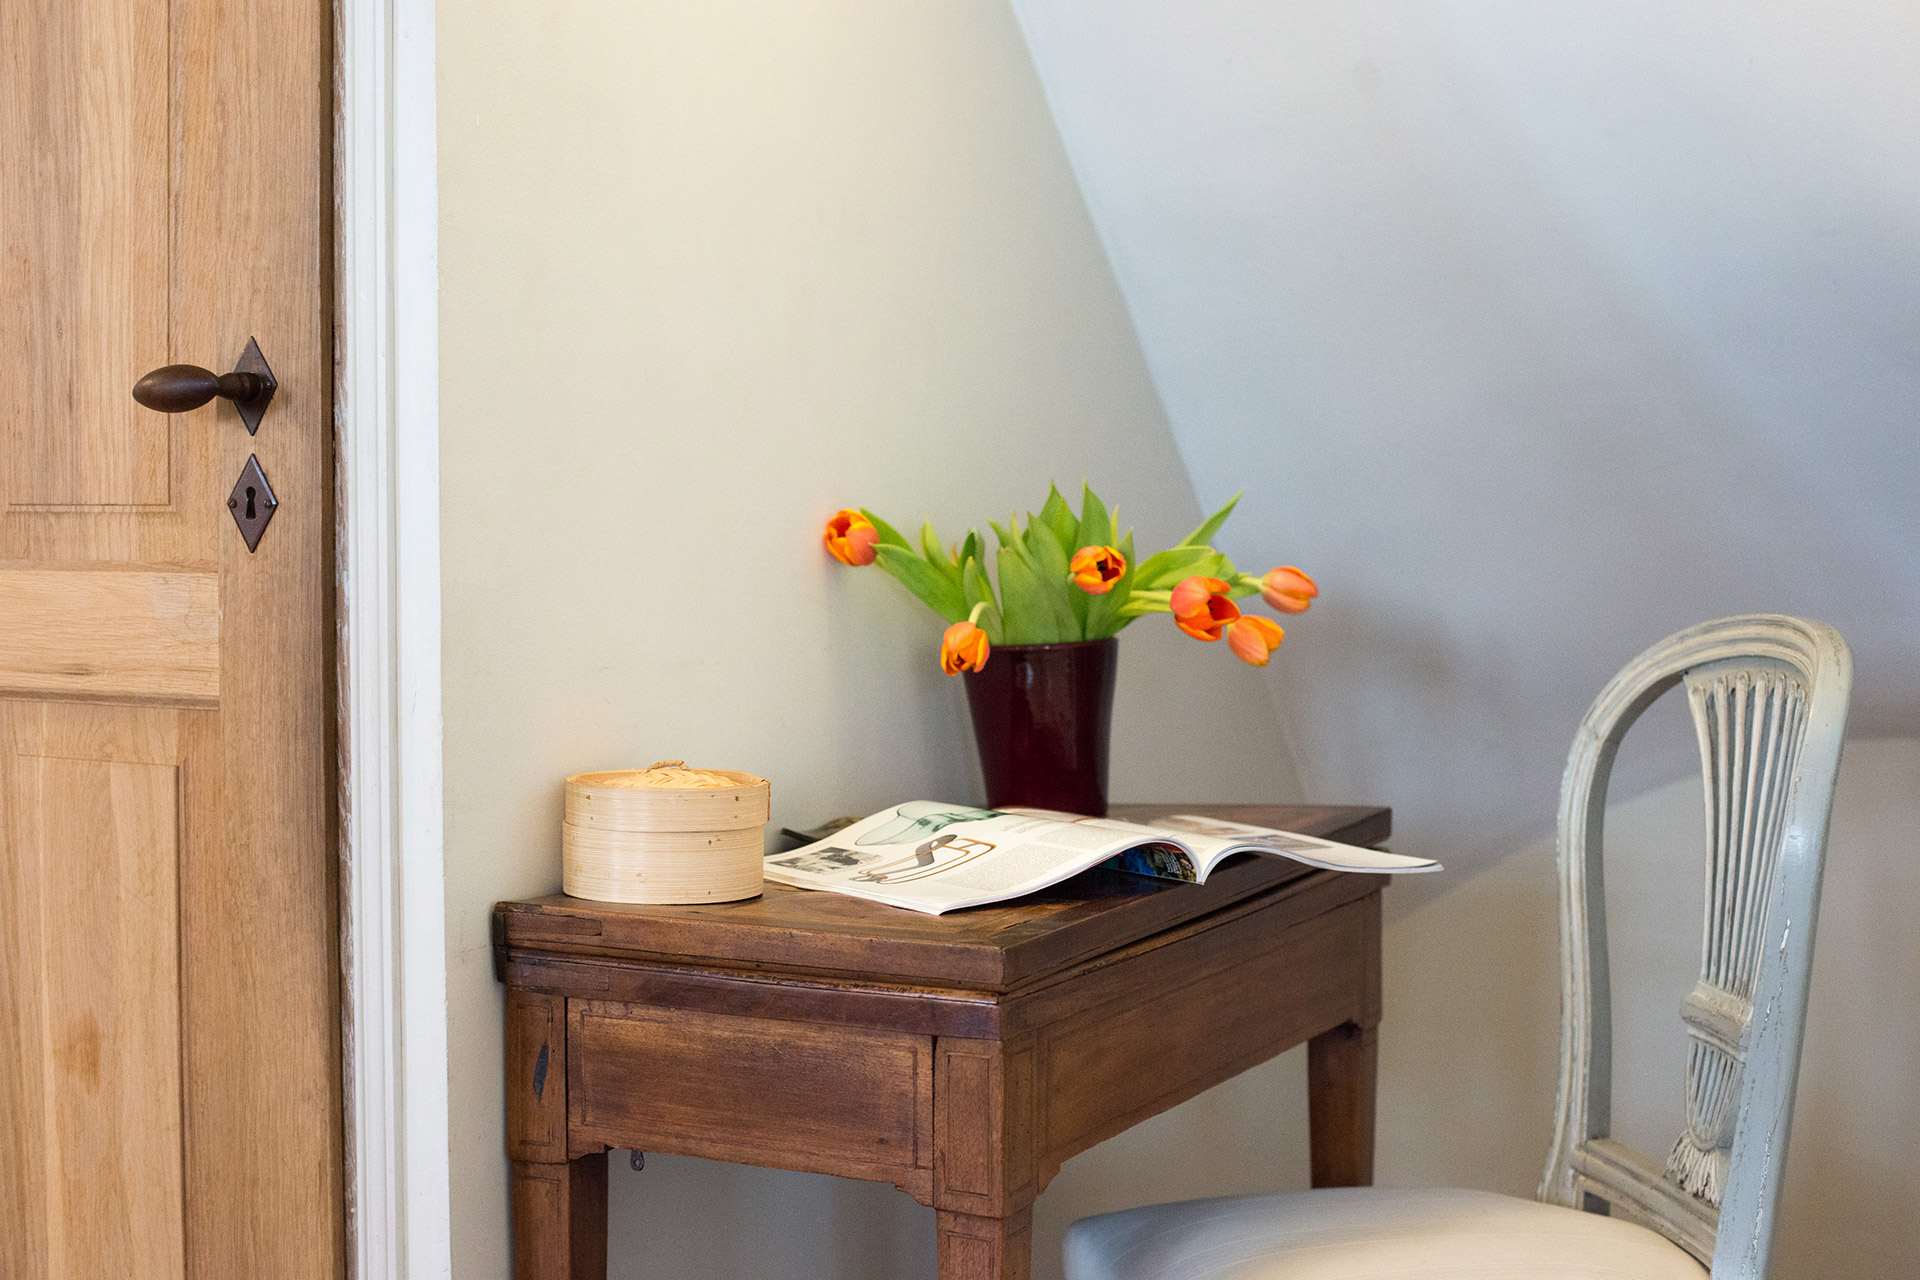 Plan your sightseeing from one of the many cozy nooks of the Brittany vacation rental offered by Paris Perfect